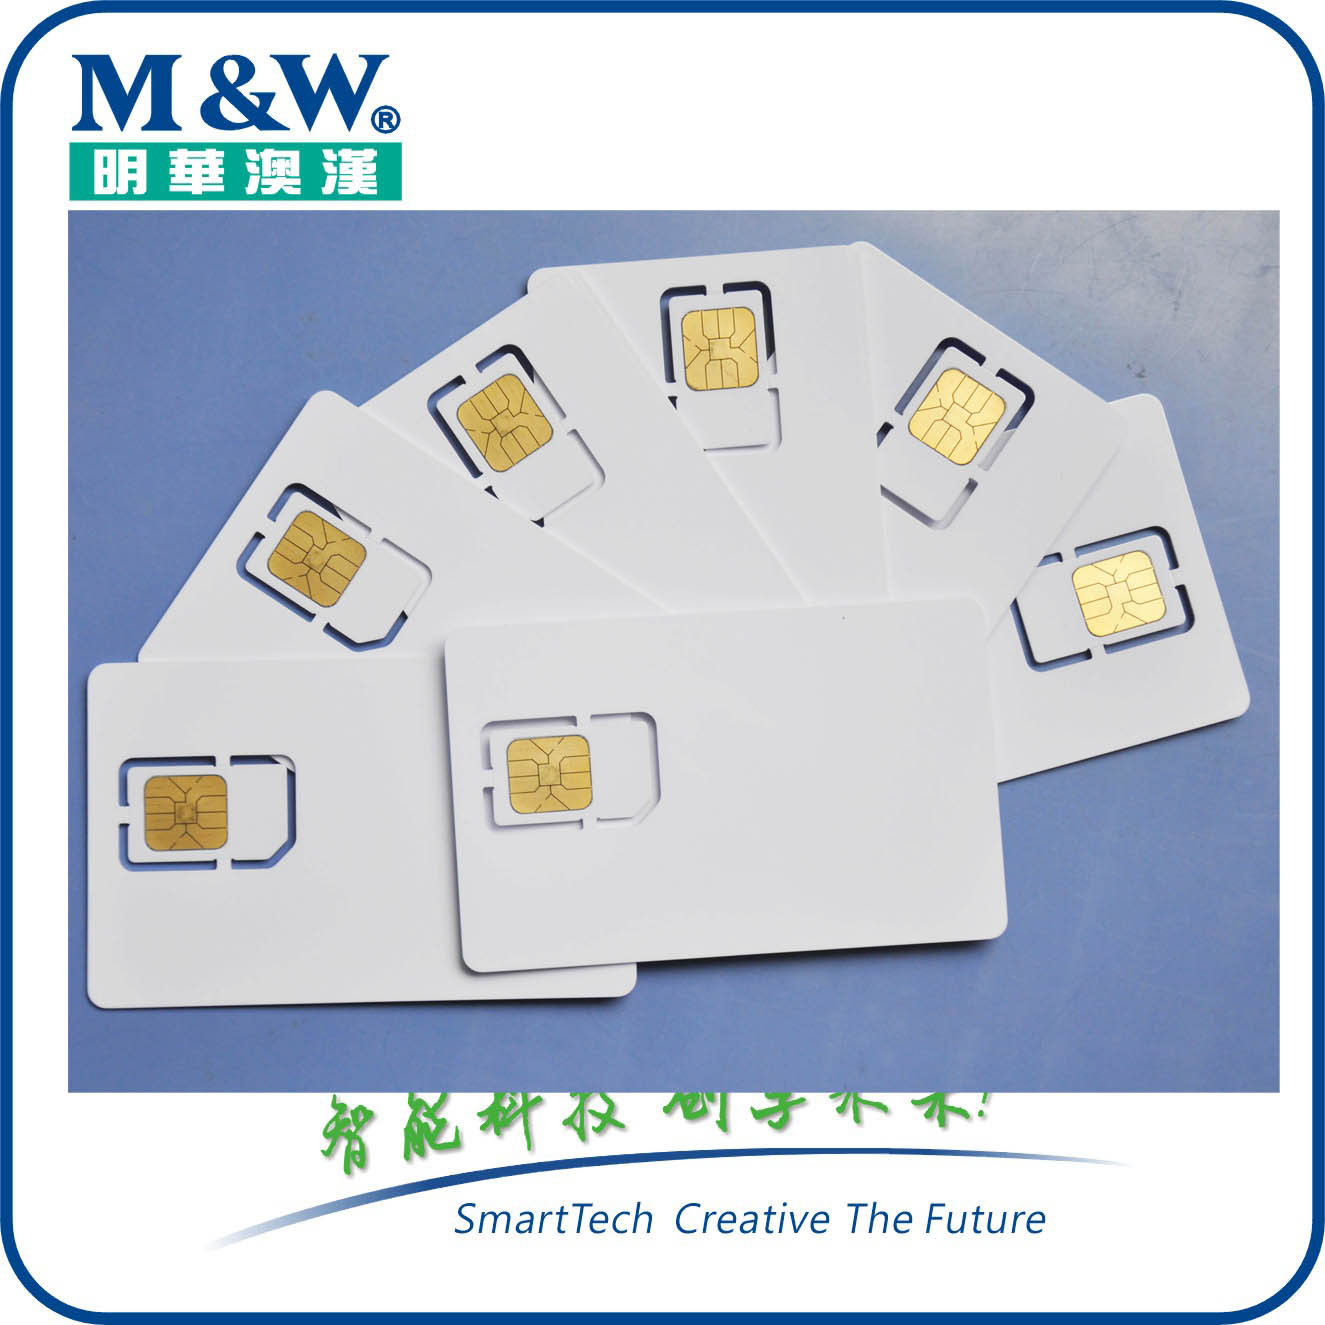 M&W PBOC CPU smart card